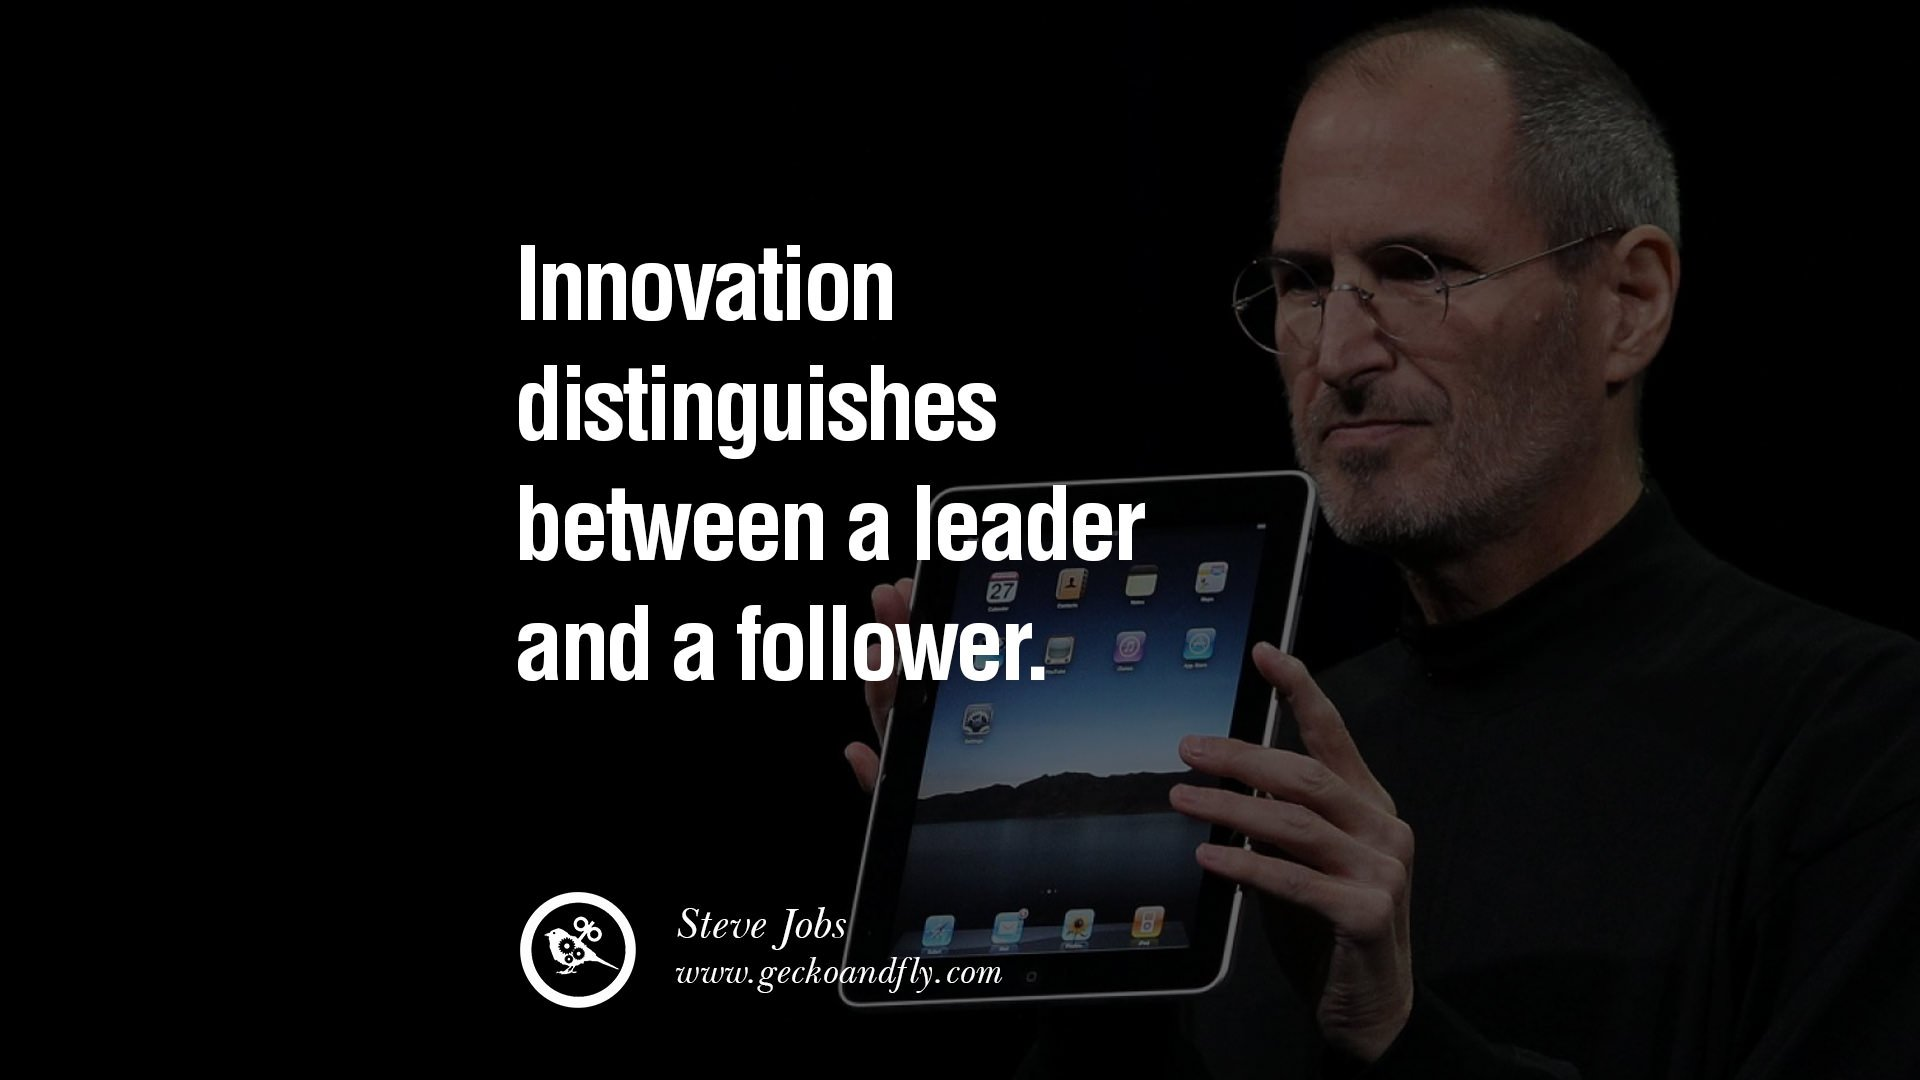 leadership and steve jobs Steve jobs, founder of apple and pixar was an iconic leader who invented the macintosh computer, a pc for the masses he went on to create the music players and mobile phones that everyone loved, and his tiny cellphones were packed with so much processing power, they operated like miniature macs.